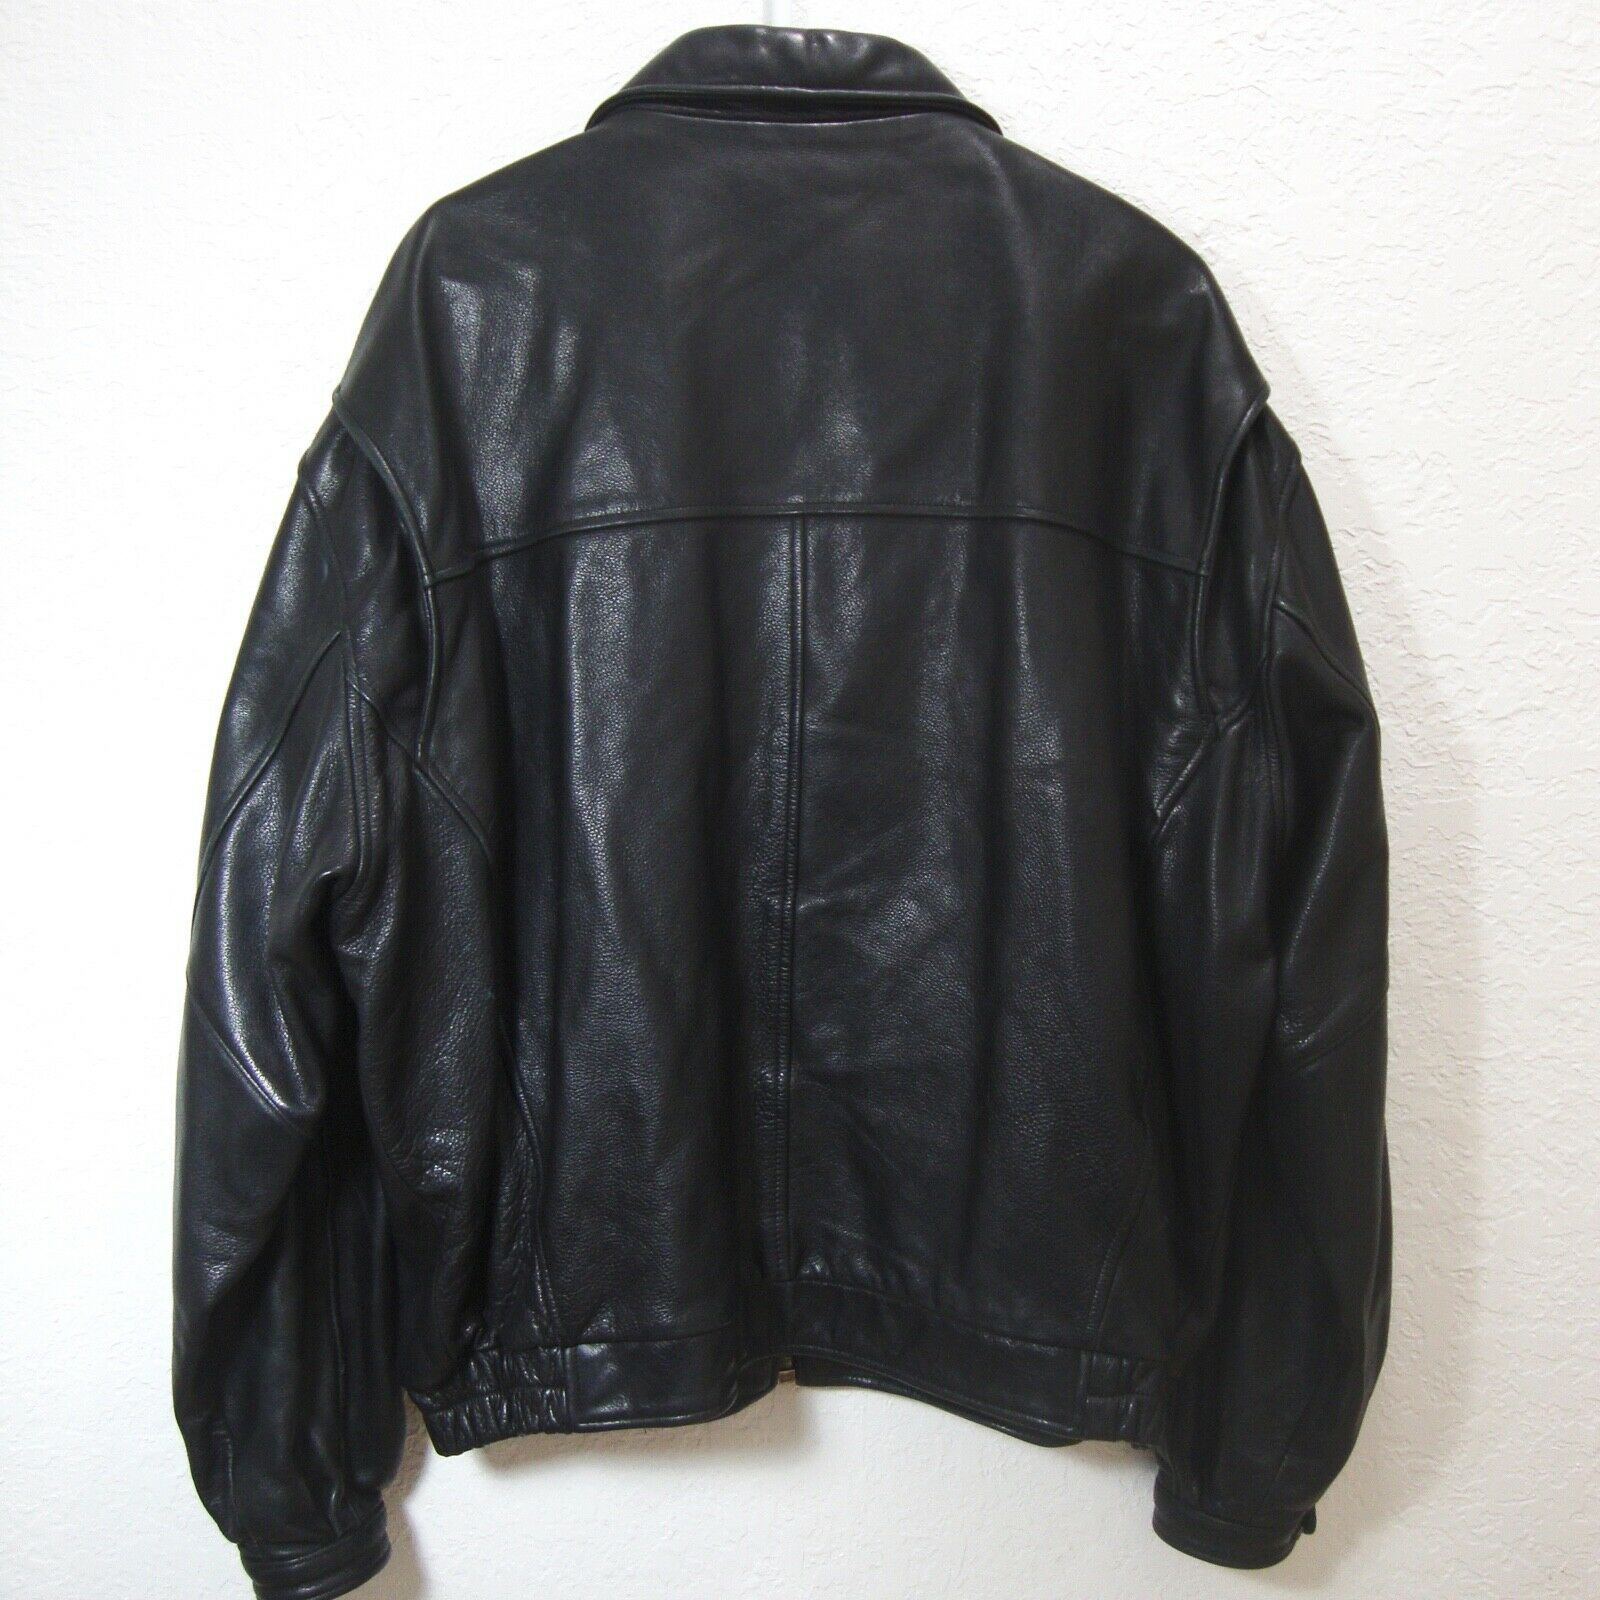 ANDREW MARC Black Leather Bomber Jacket Distressed Lined Zip Up Motorcycle XL image 2